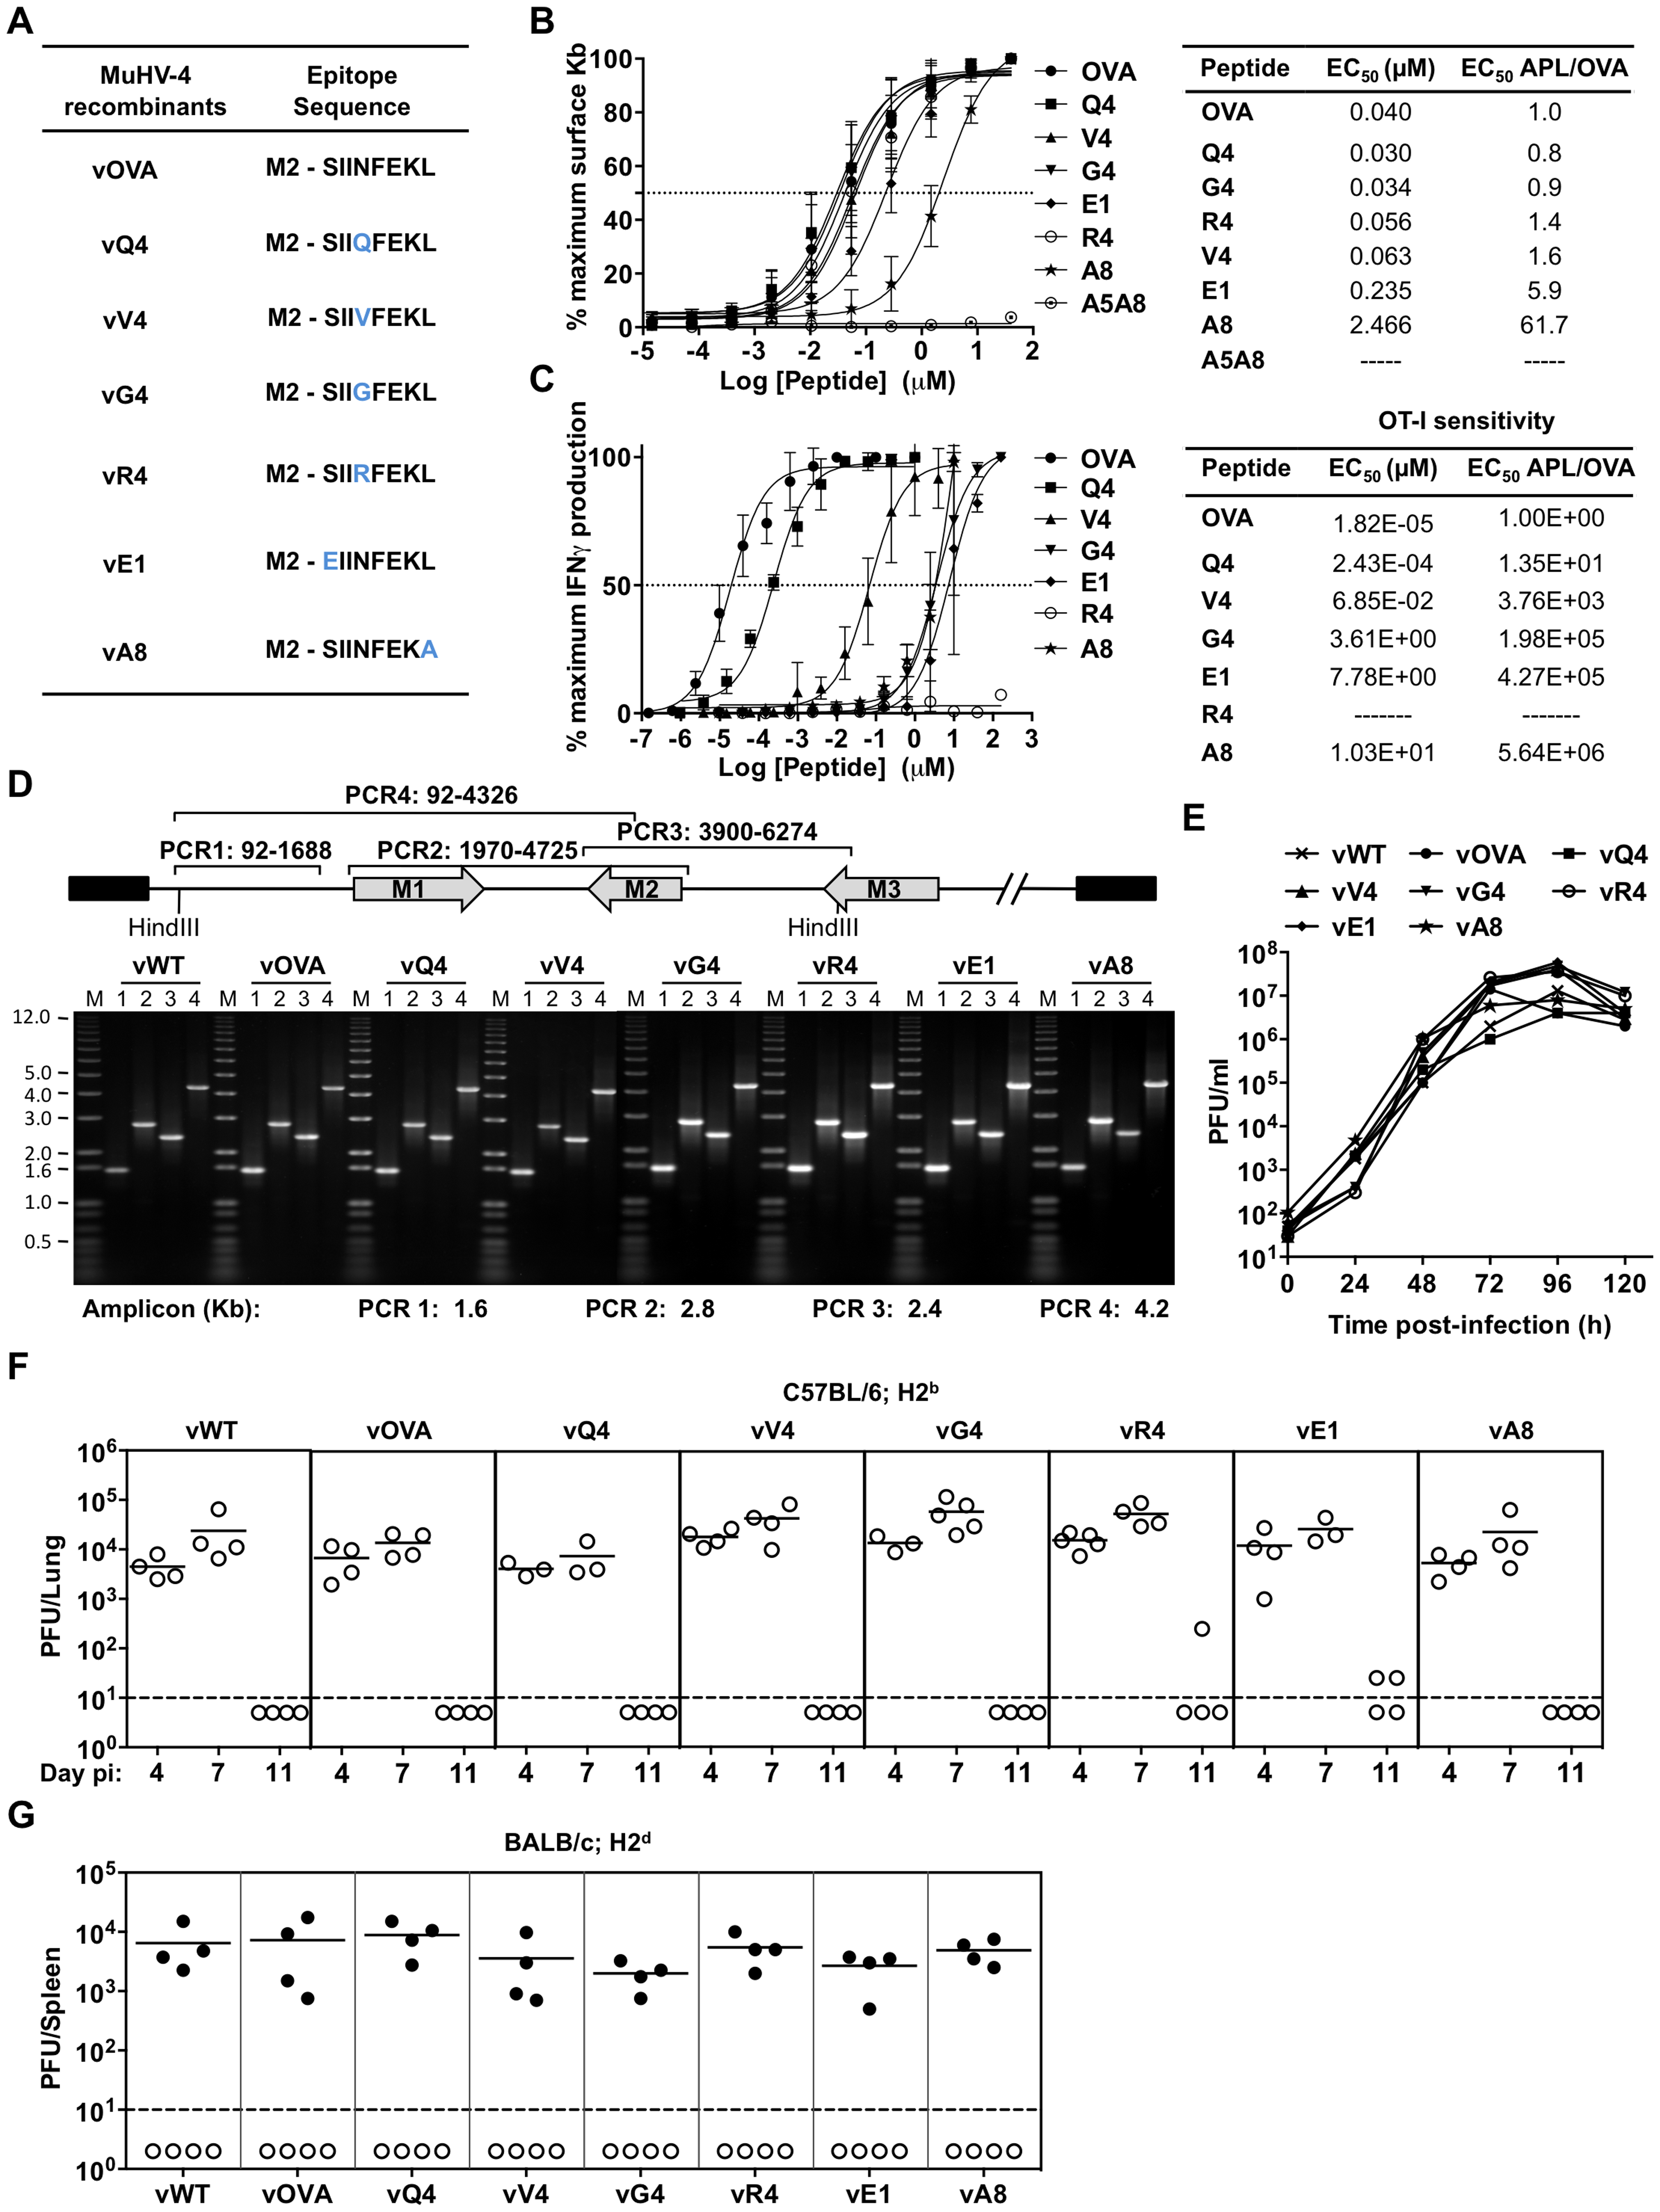 Characterization of APLs by MHC class I binding and TcR functional avidity, and generation of MuHV-4 recombinants expressing OVA or APLs linked to M2.